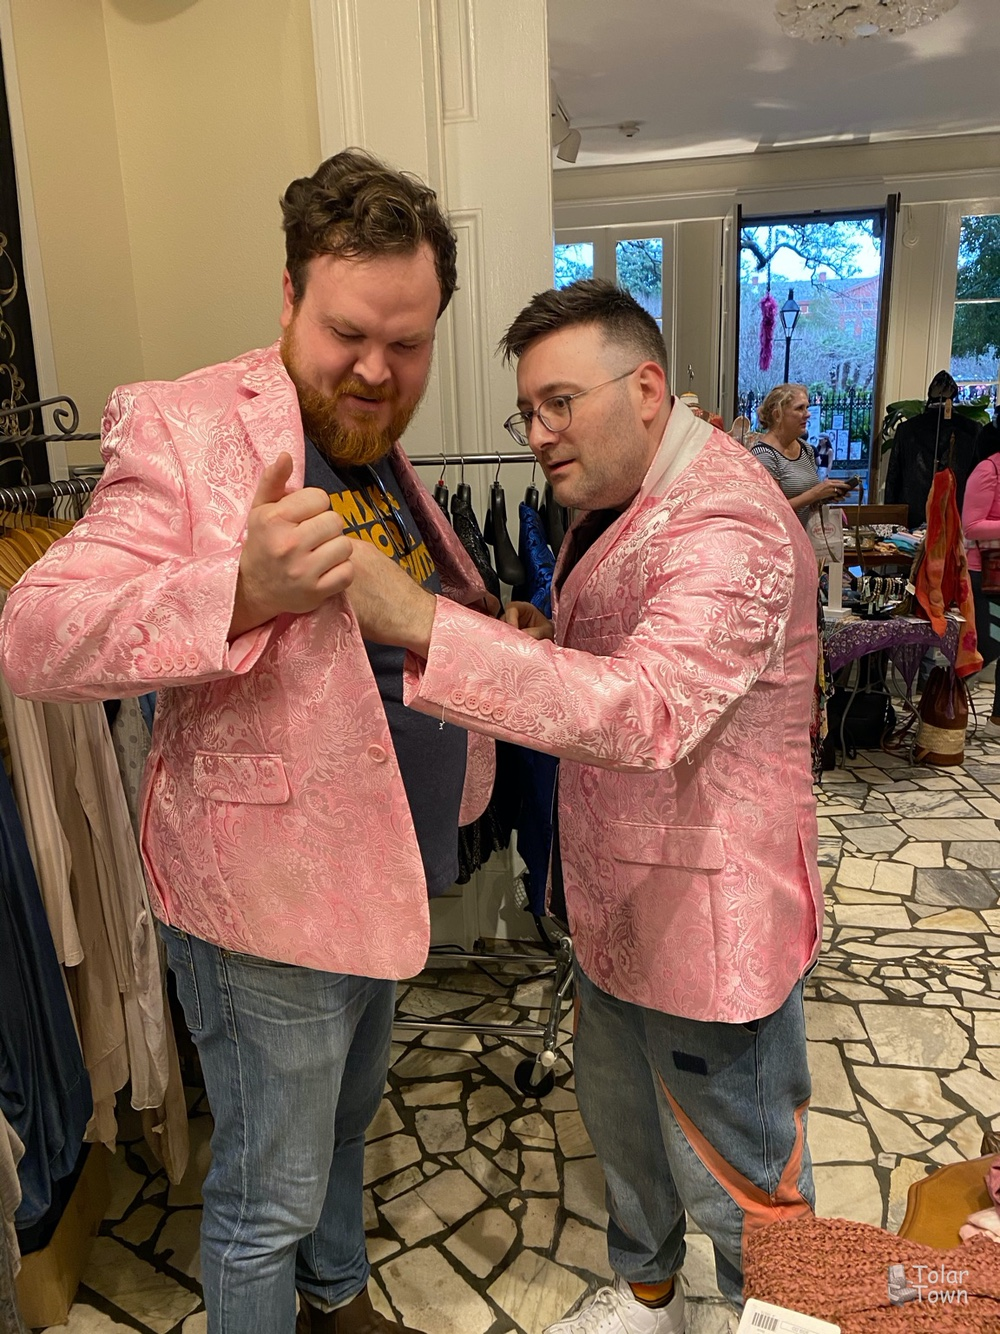 Tolar & Clint trying on some jackets